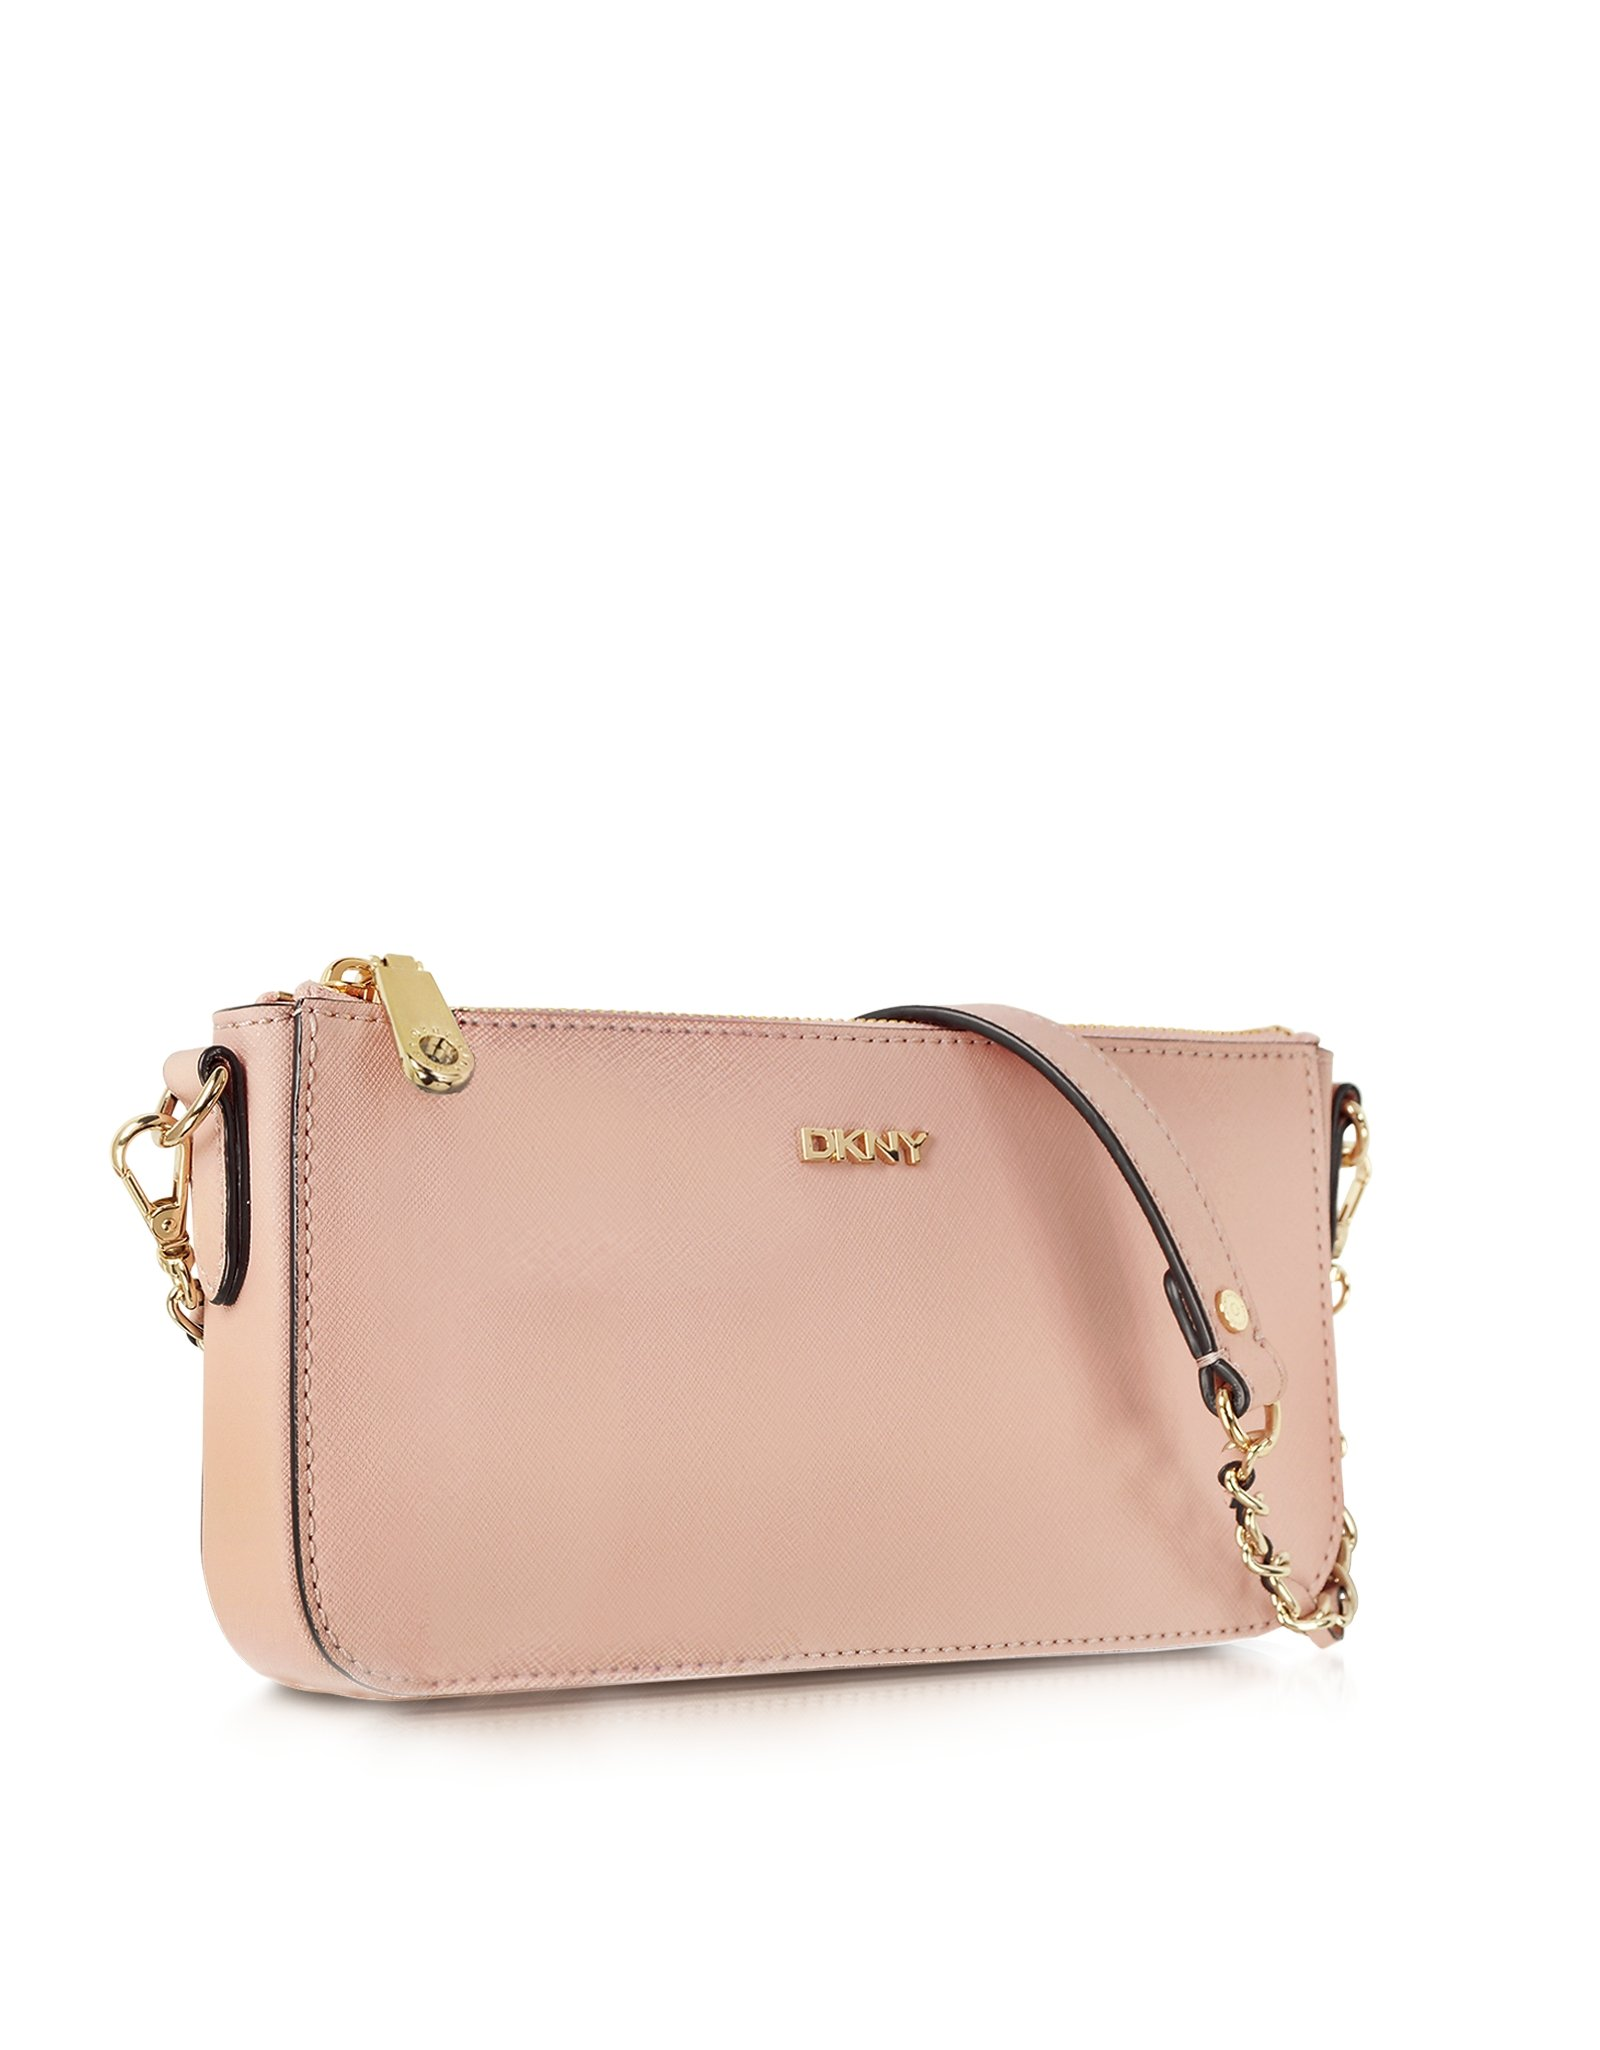 a97acfeff0 Lyst - DKNY Bryant Park Blush Saffiano Leather Crossbody Bag in Pink